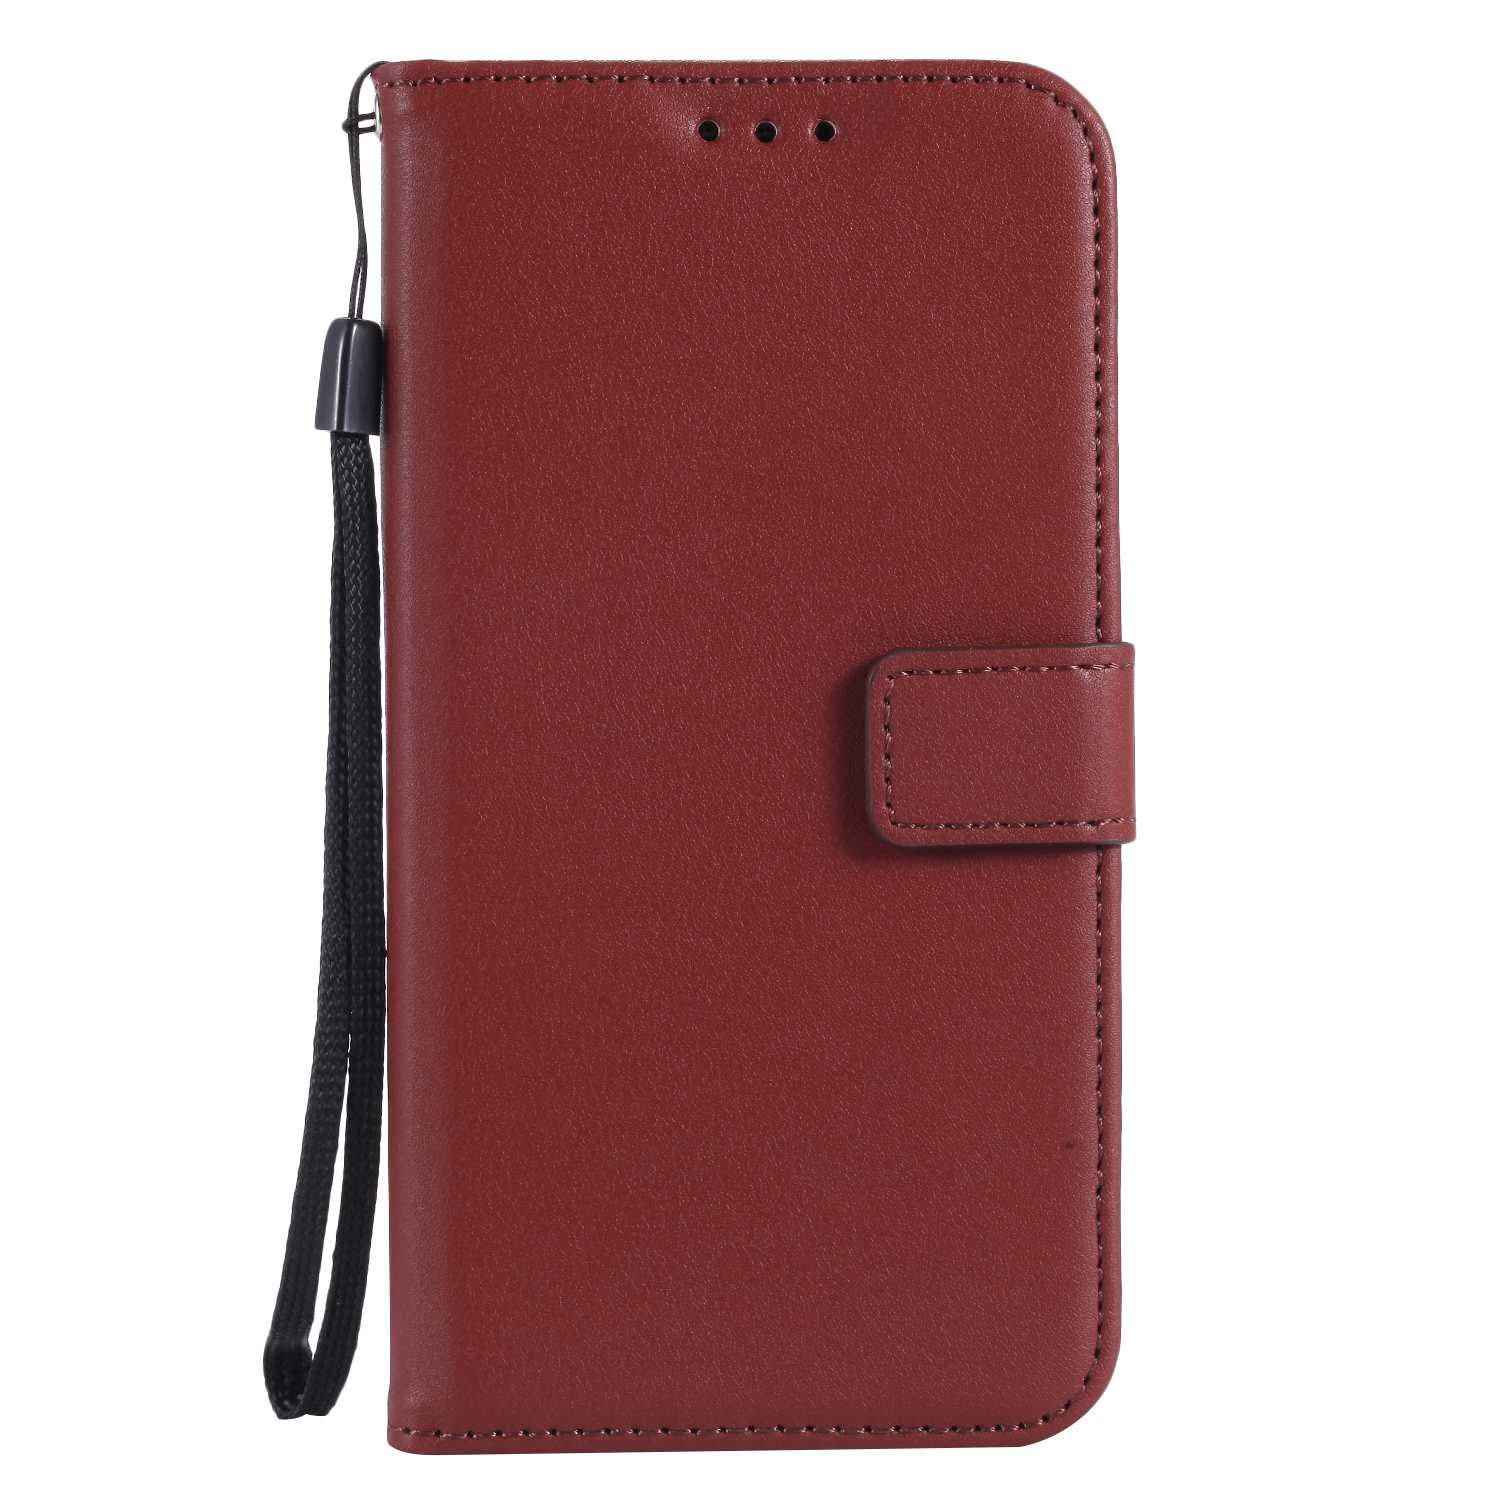 UNEXTATI Galaxy J1 2016 Case, Leather Magnetic Closure Flip Wallet Case with Card Slot and Wrist Strap, Slim Full Body Protective Case (Brown #6)